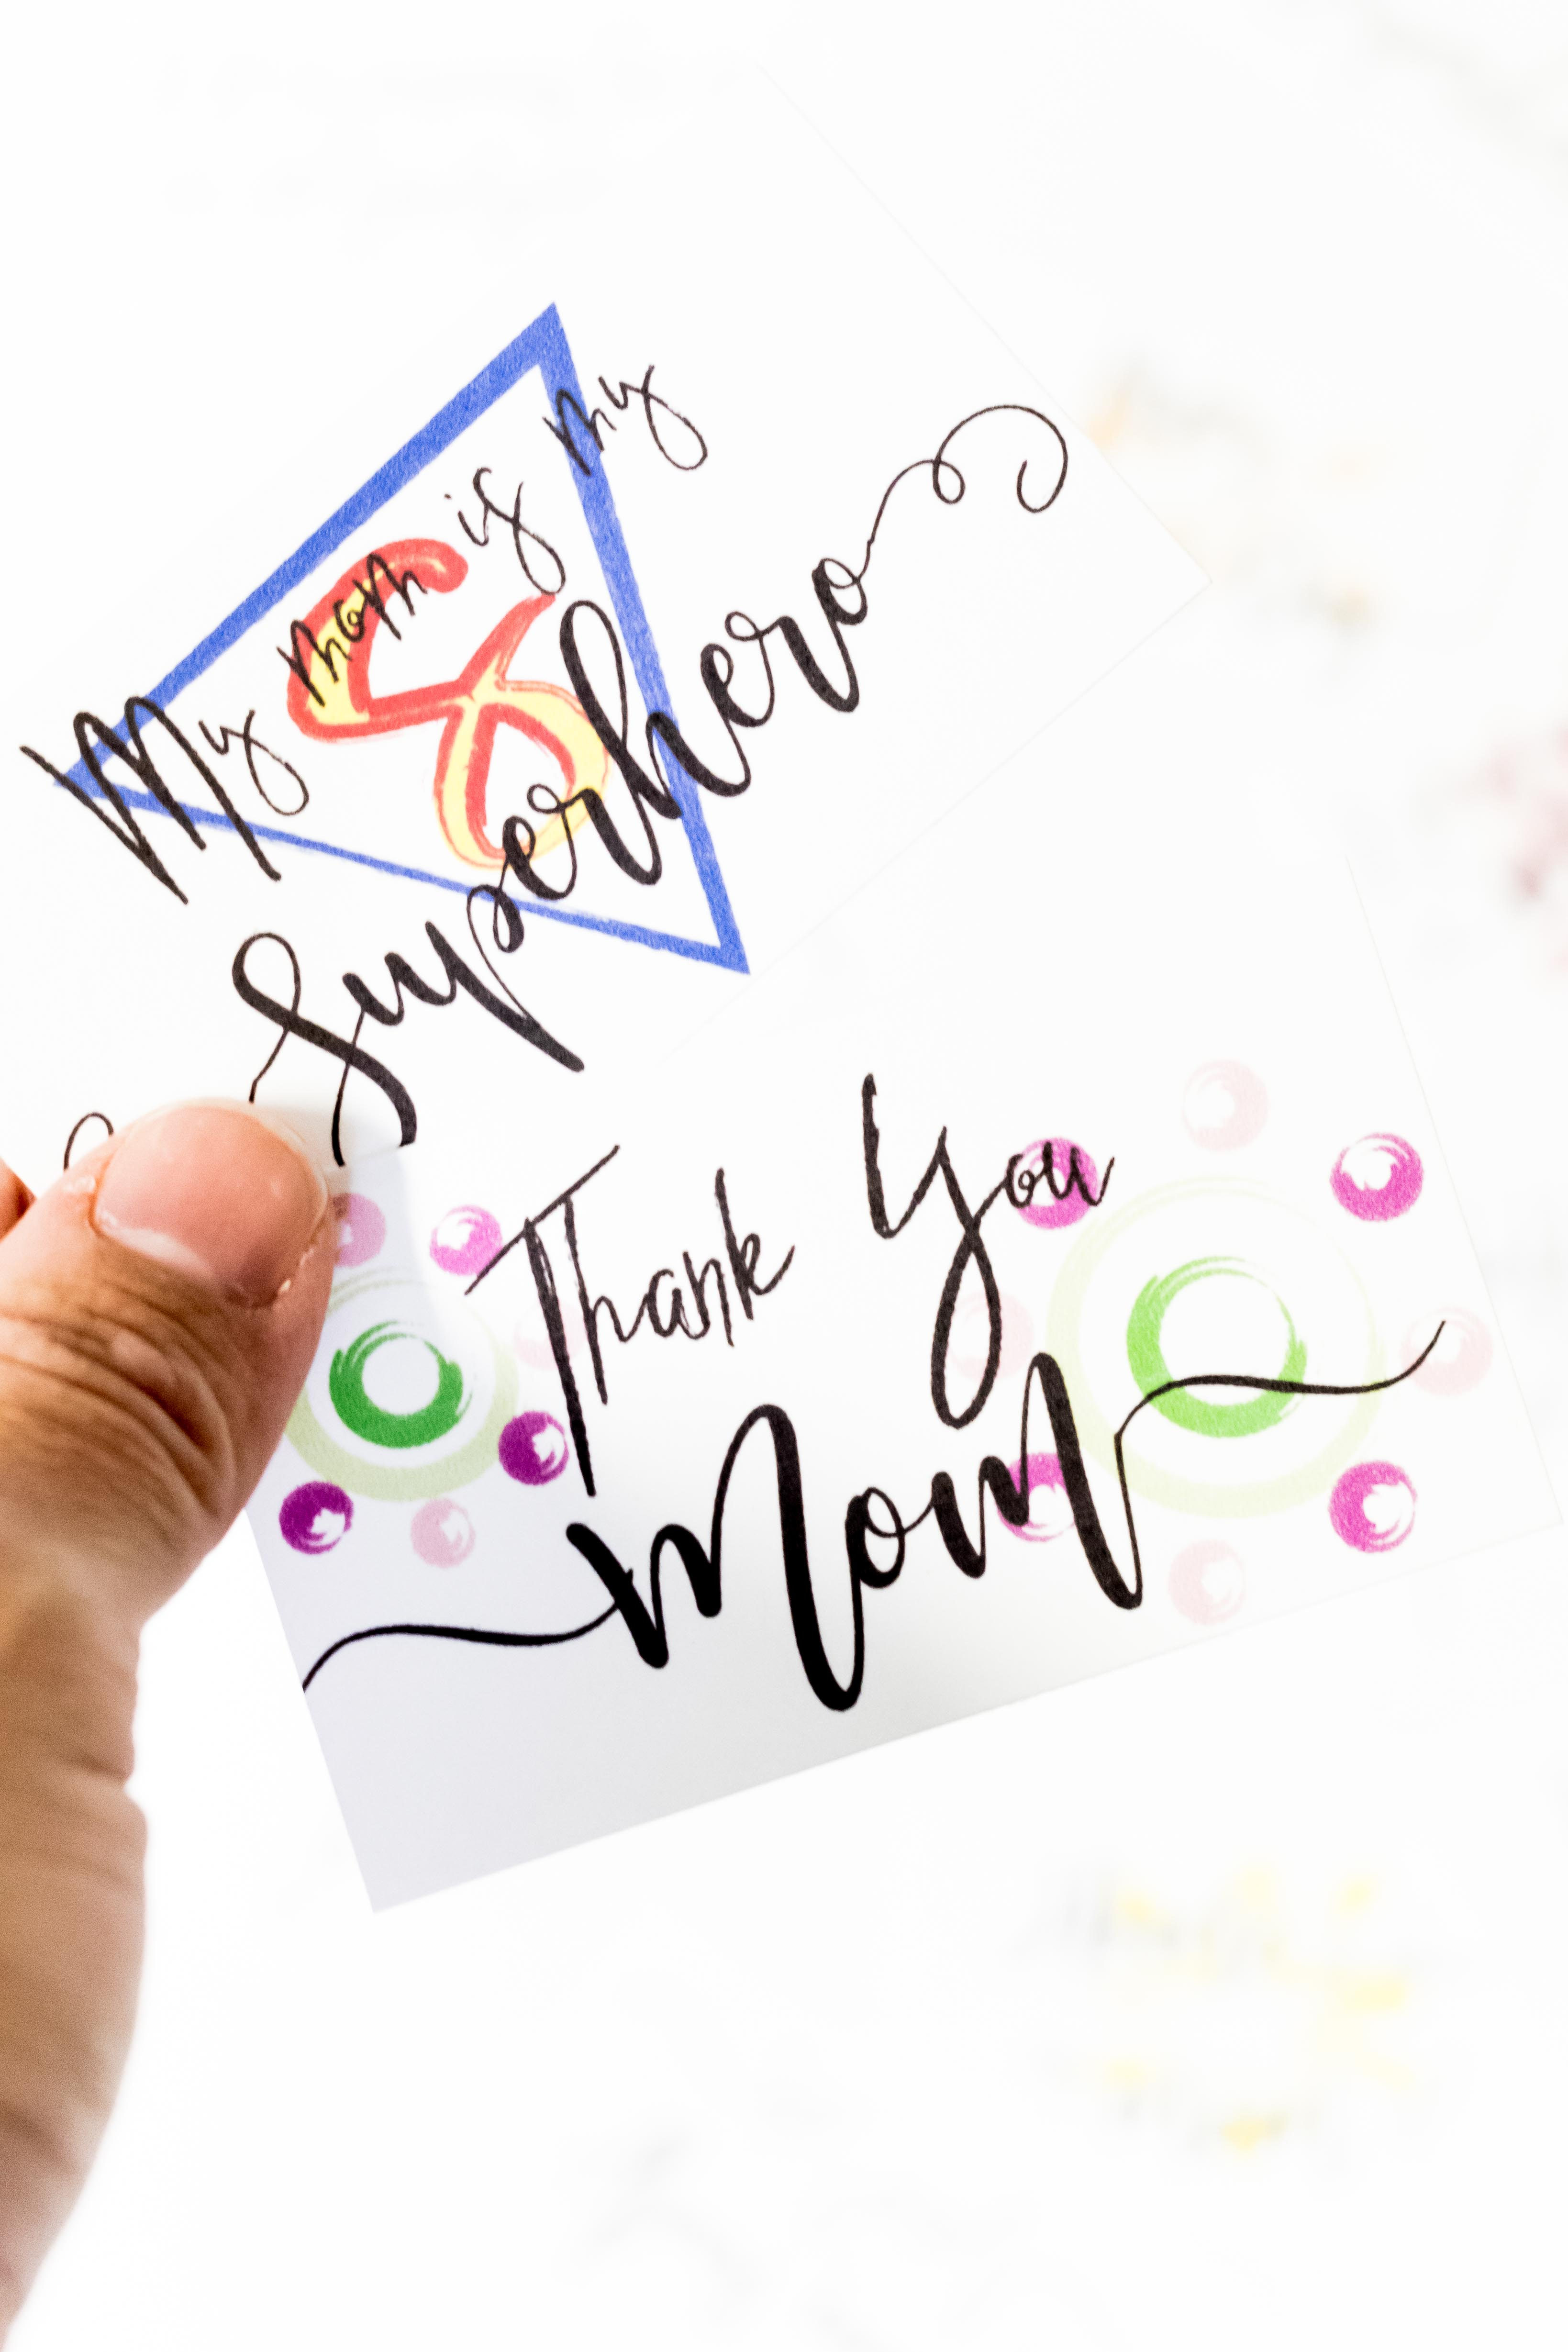 Since being a mother is one of the hardest job out there I believe all moms should be pampered and celebrated. That's why I designed these super cute Mother's Day Pocket Cards Free Printable. Print them out in color - or the coloring version if you want to add your own touch - and let her know how much she means to you!